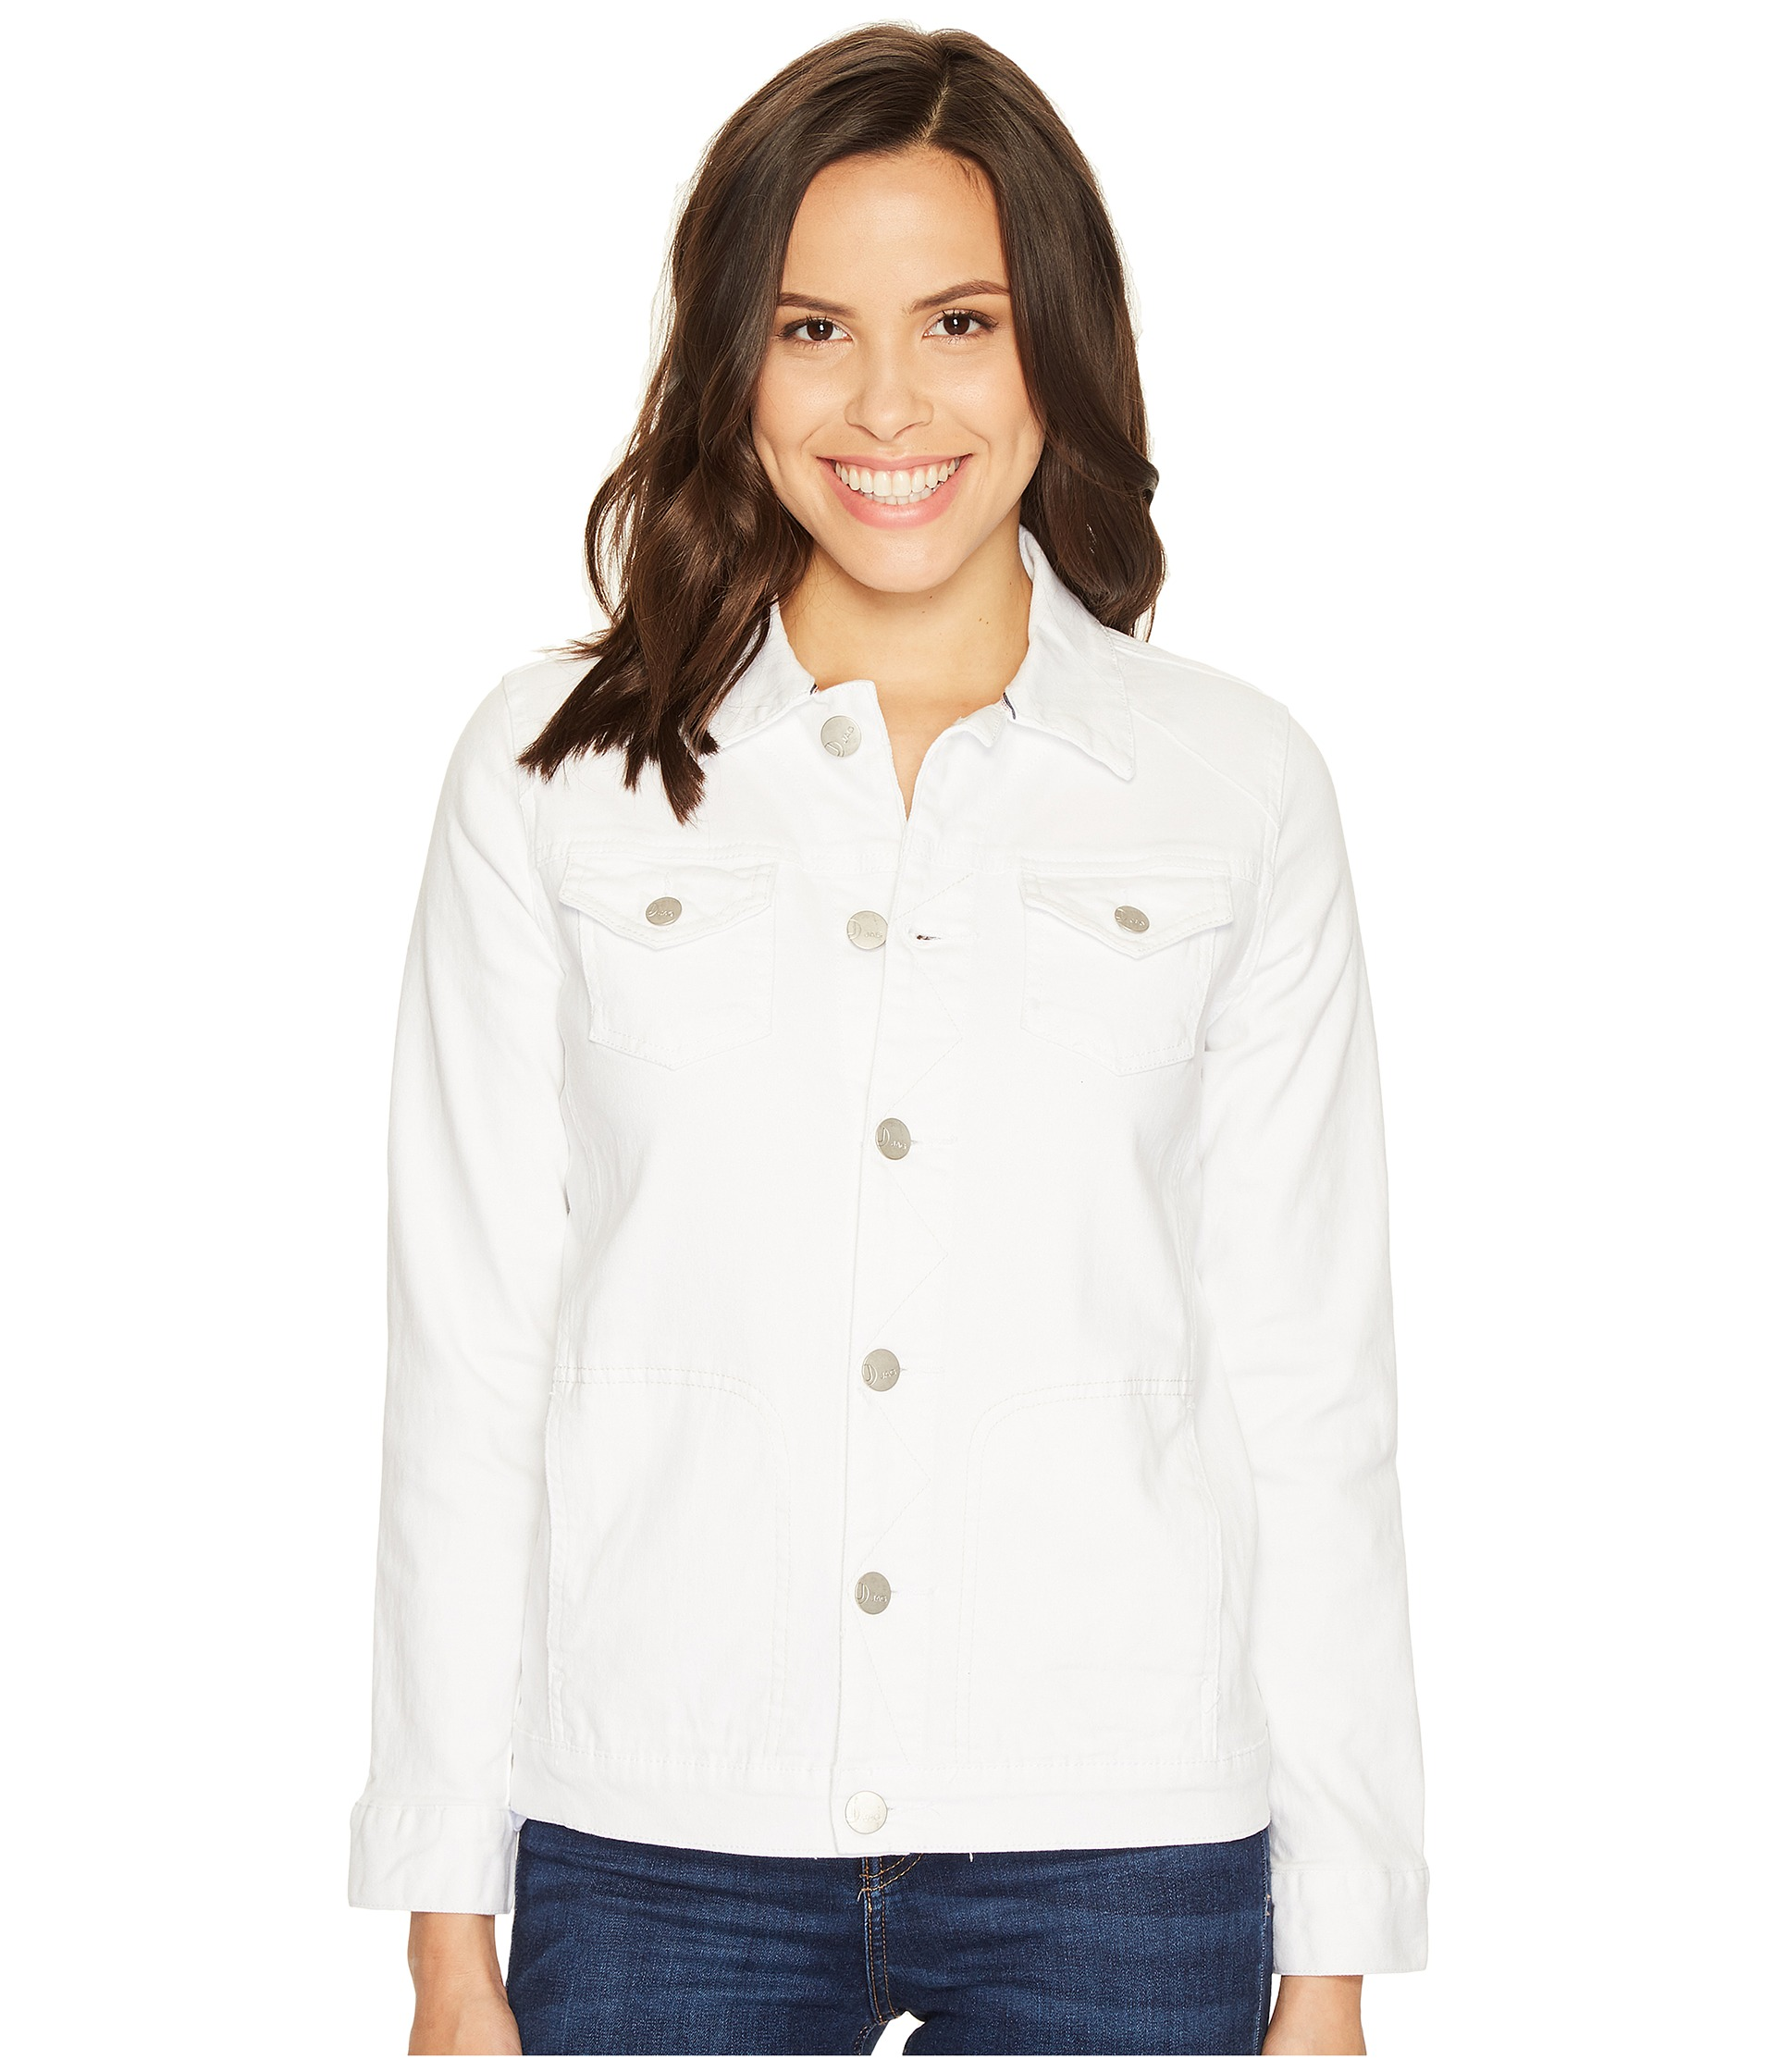 Jag Jeans Lowen Stretch Jacket in White Denim - Zappos.com Free Shipping BOTH Ways